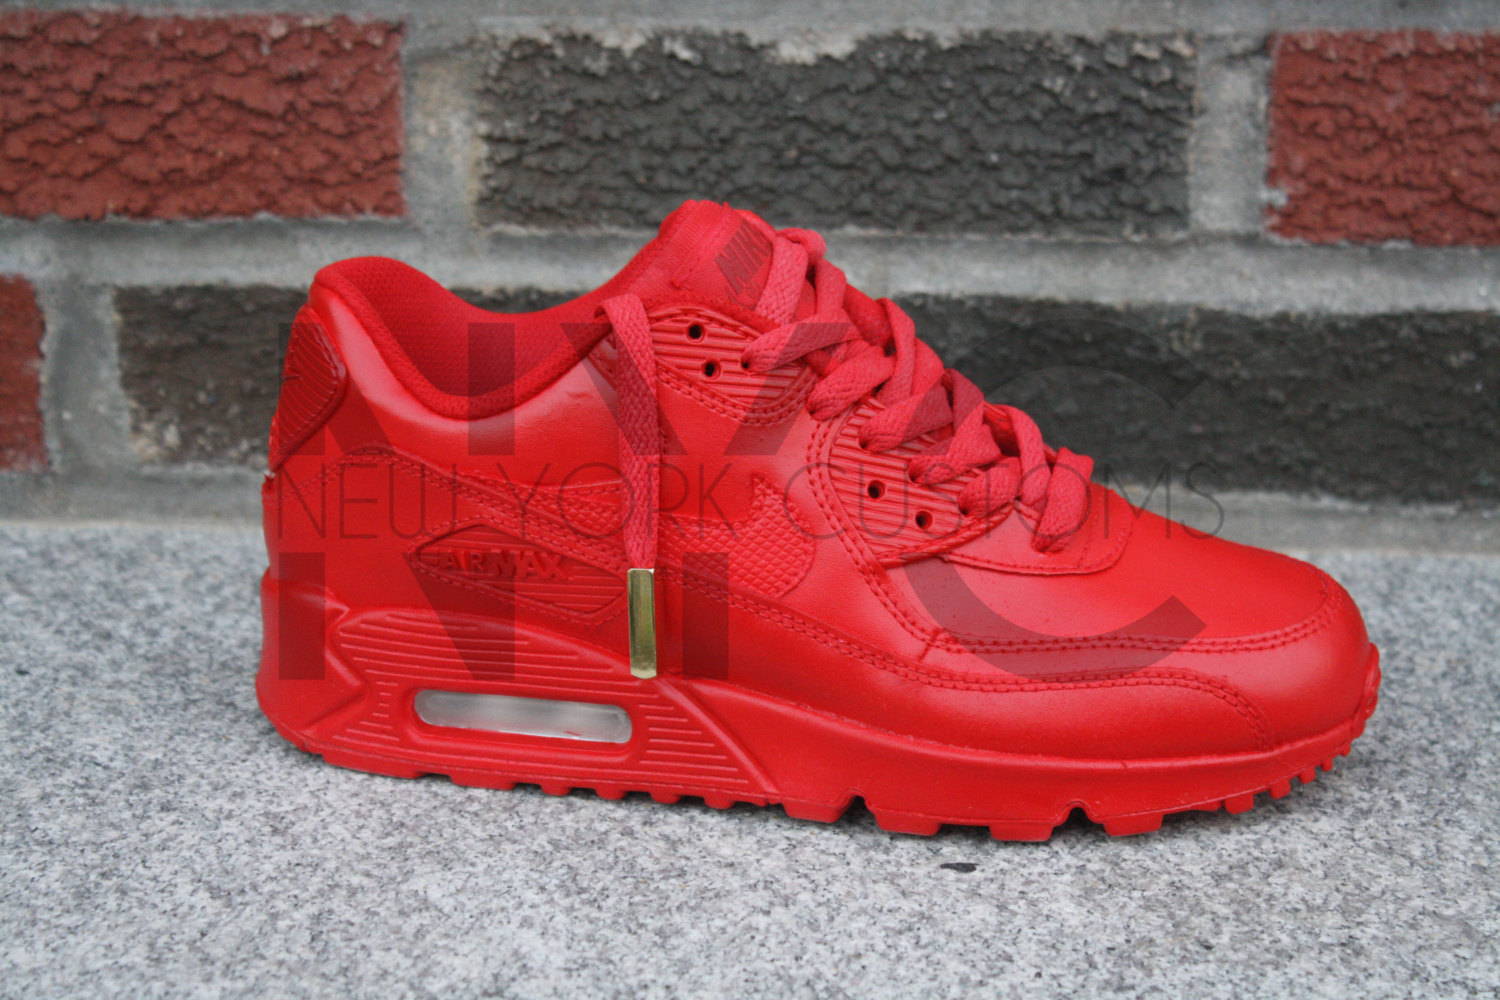 newest afd08 612fc Nike Air Max 90 Red October Yeezy w  Gold Aglets Men   Women ...